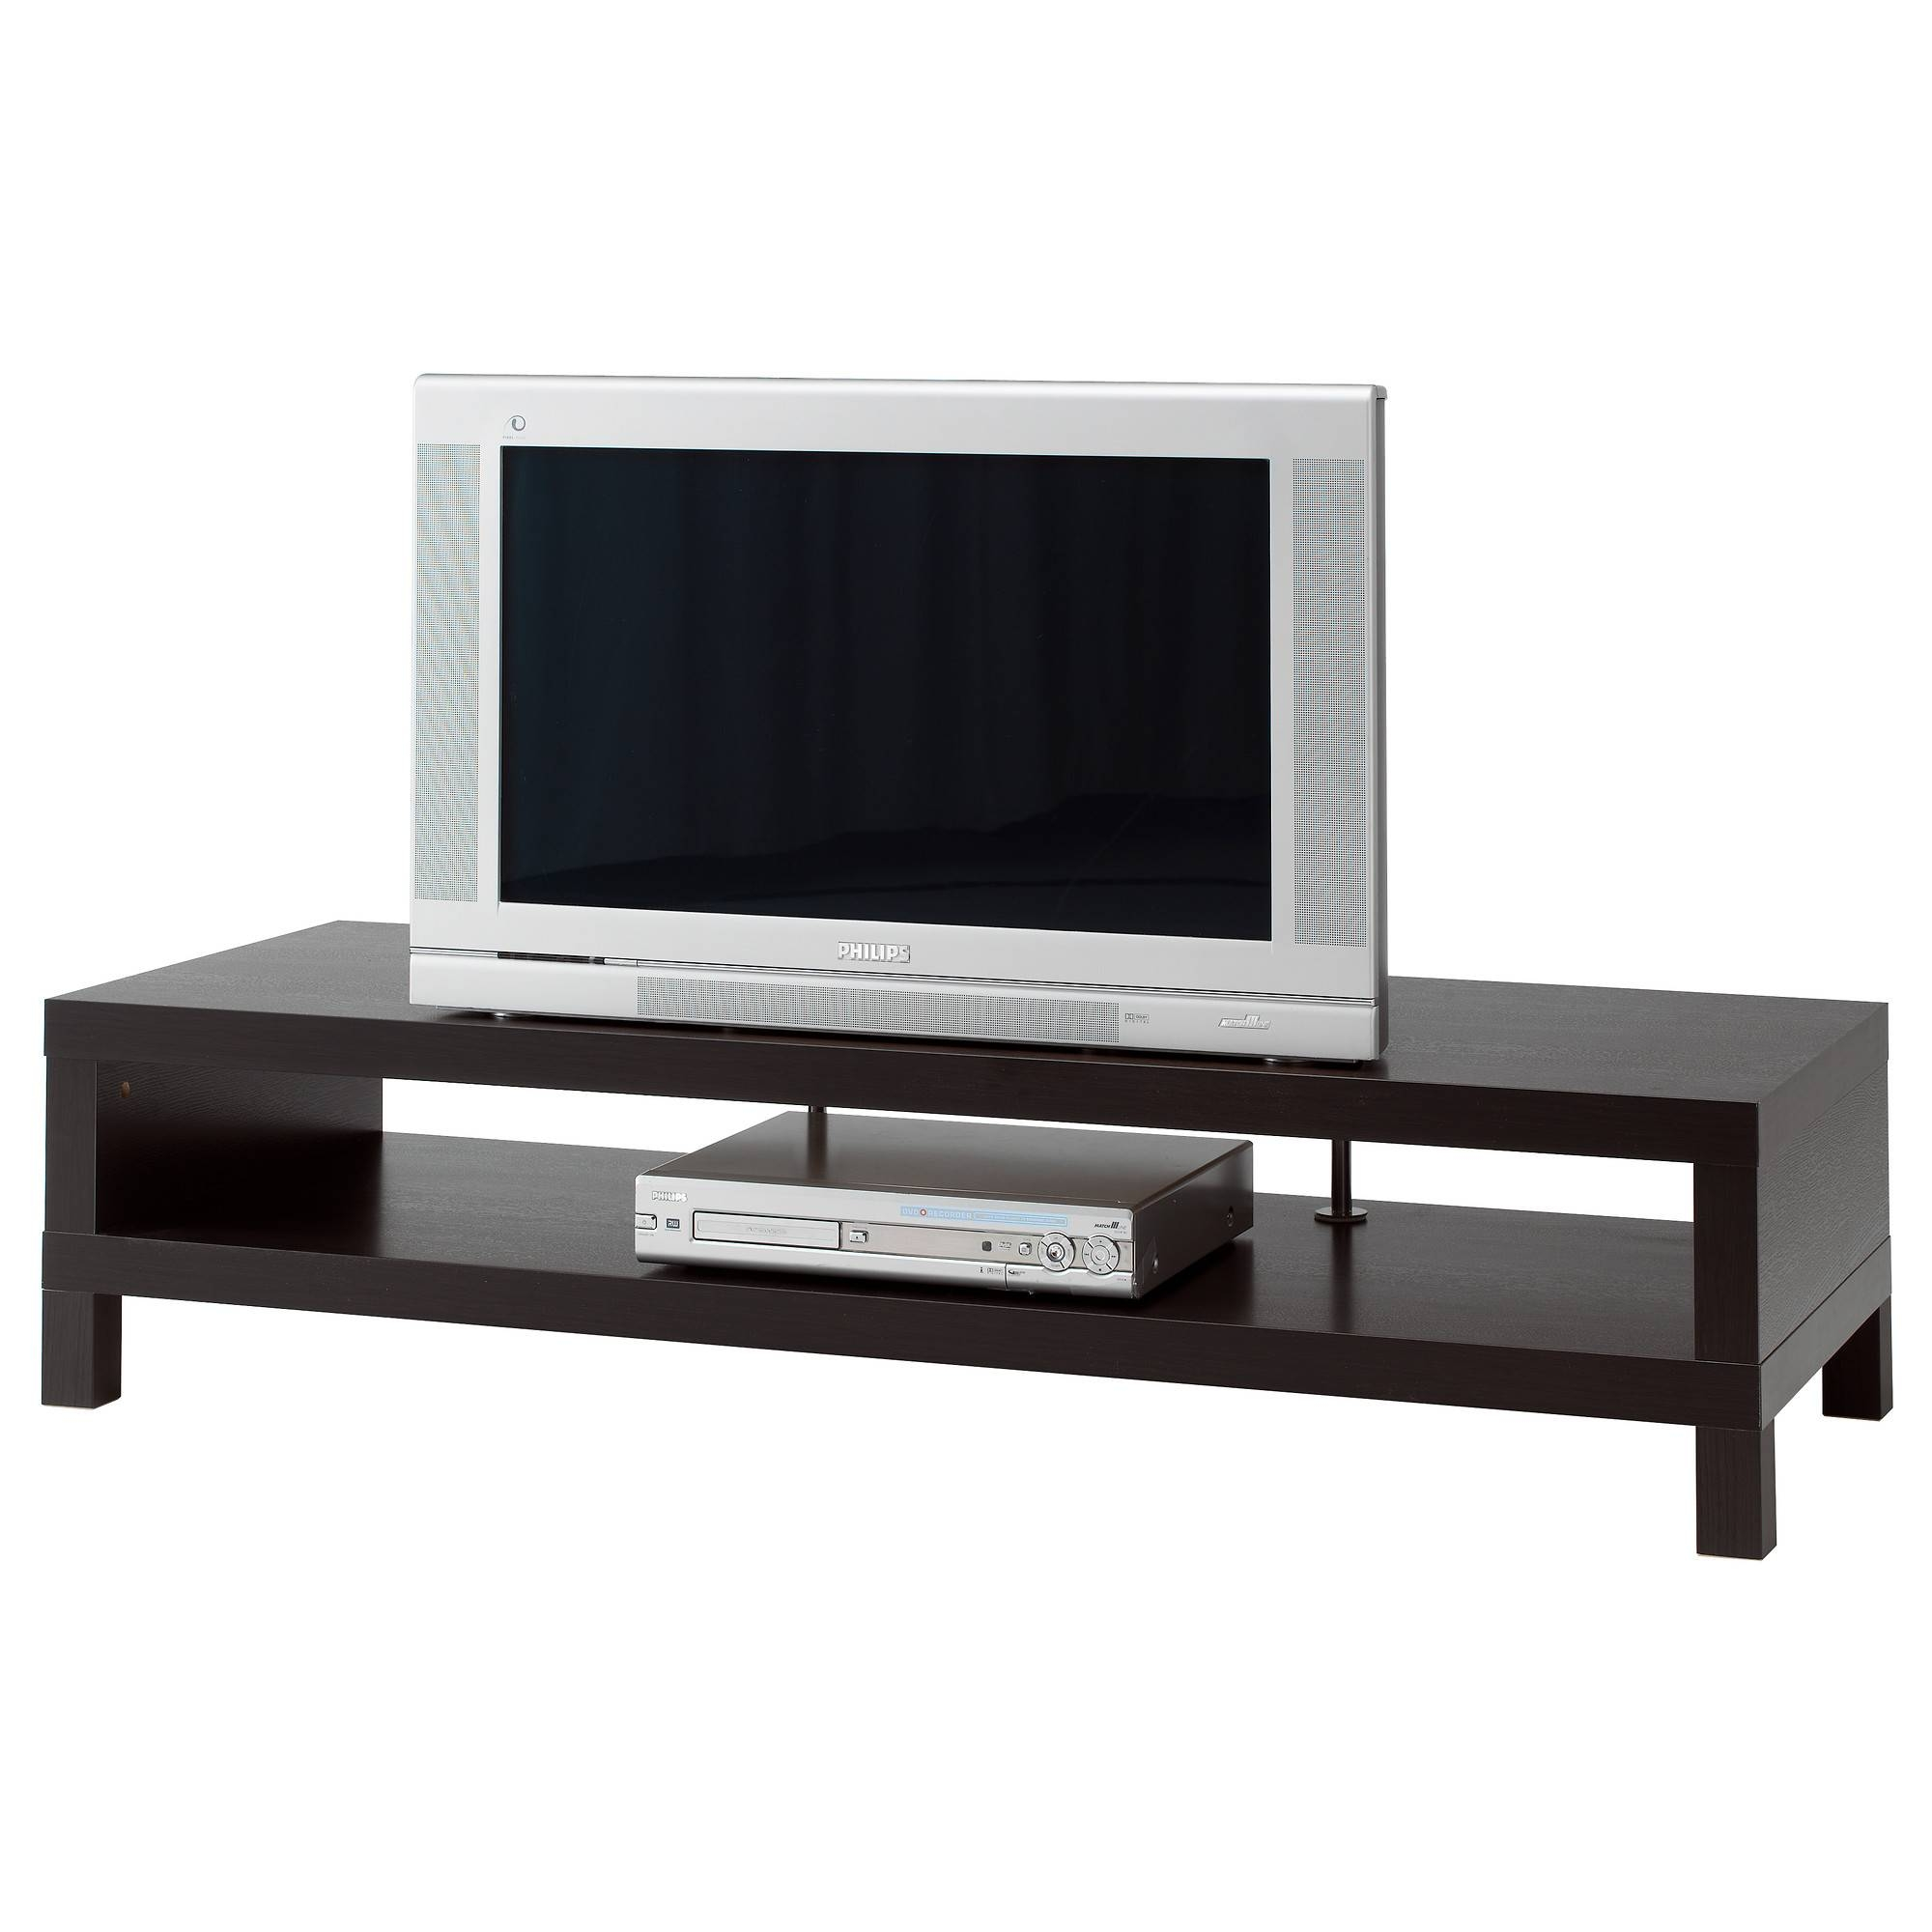 Lack Tv Unit - Ikea within Tv Stands 38 Inches Wide (Image 1 of 15)